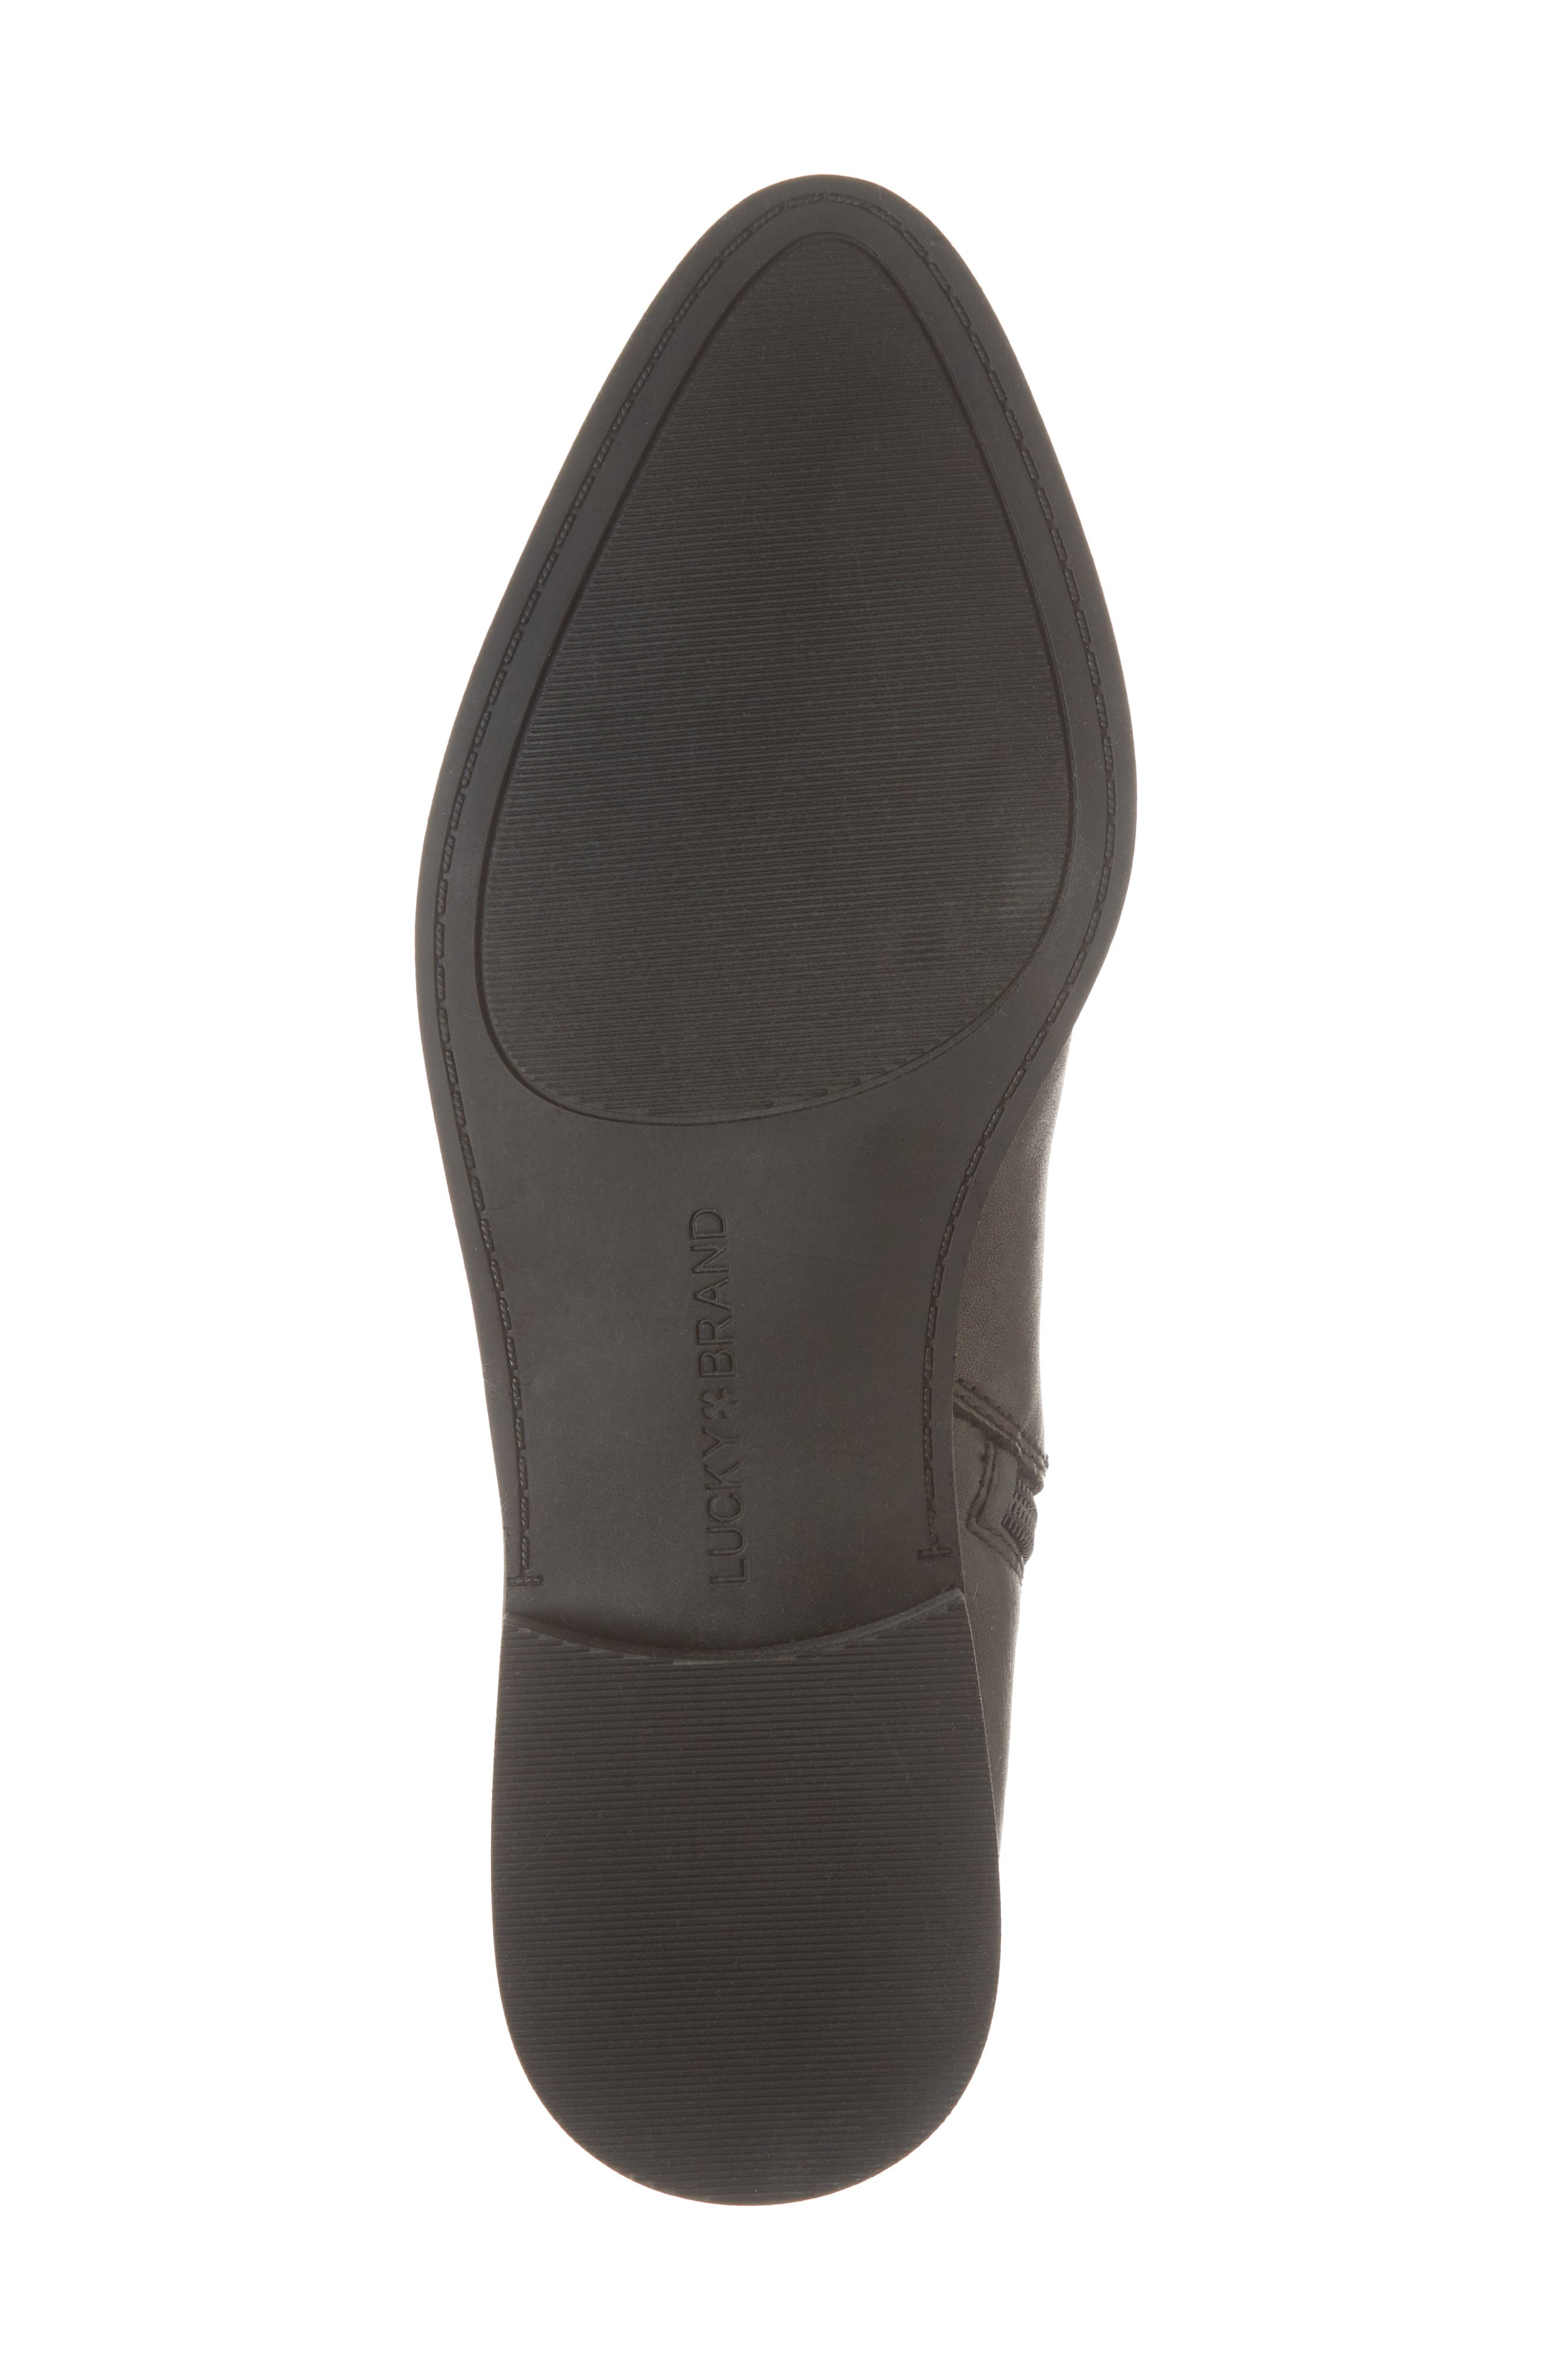 Prucella Bootie,                             Alternate thumbnail 6, color,                             BLACK LEATHER